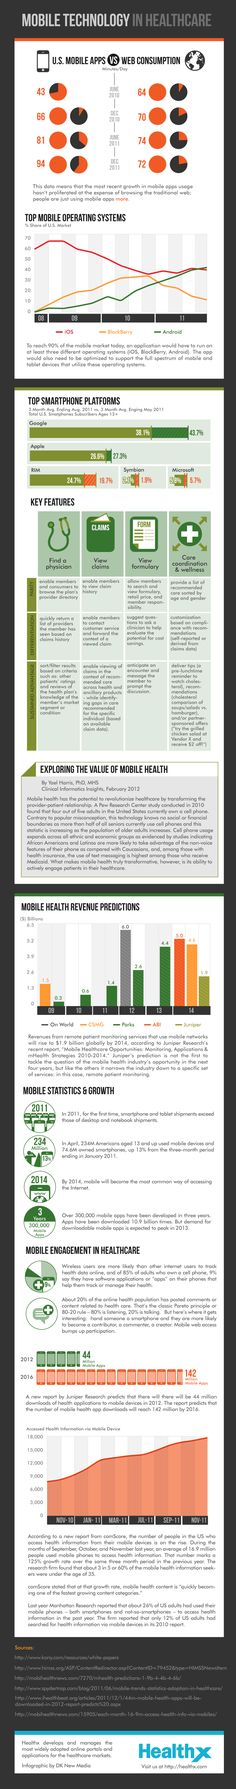 Mobile Technology in HealthCare - The following infographic from healthcare solutions firm Healthx highlights the change that smartphones and tablets have had on the health industry. Results show that there will be 44 million m-health app downloads by the end of 2012, which will rise to 142 million by 2016.